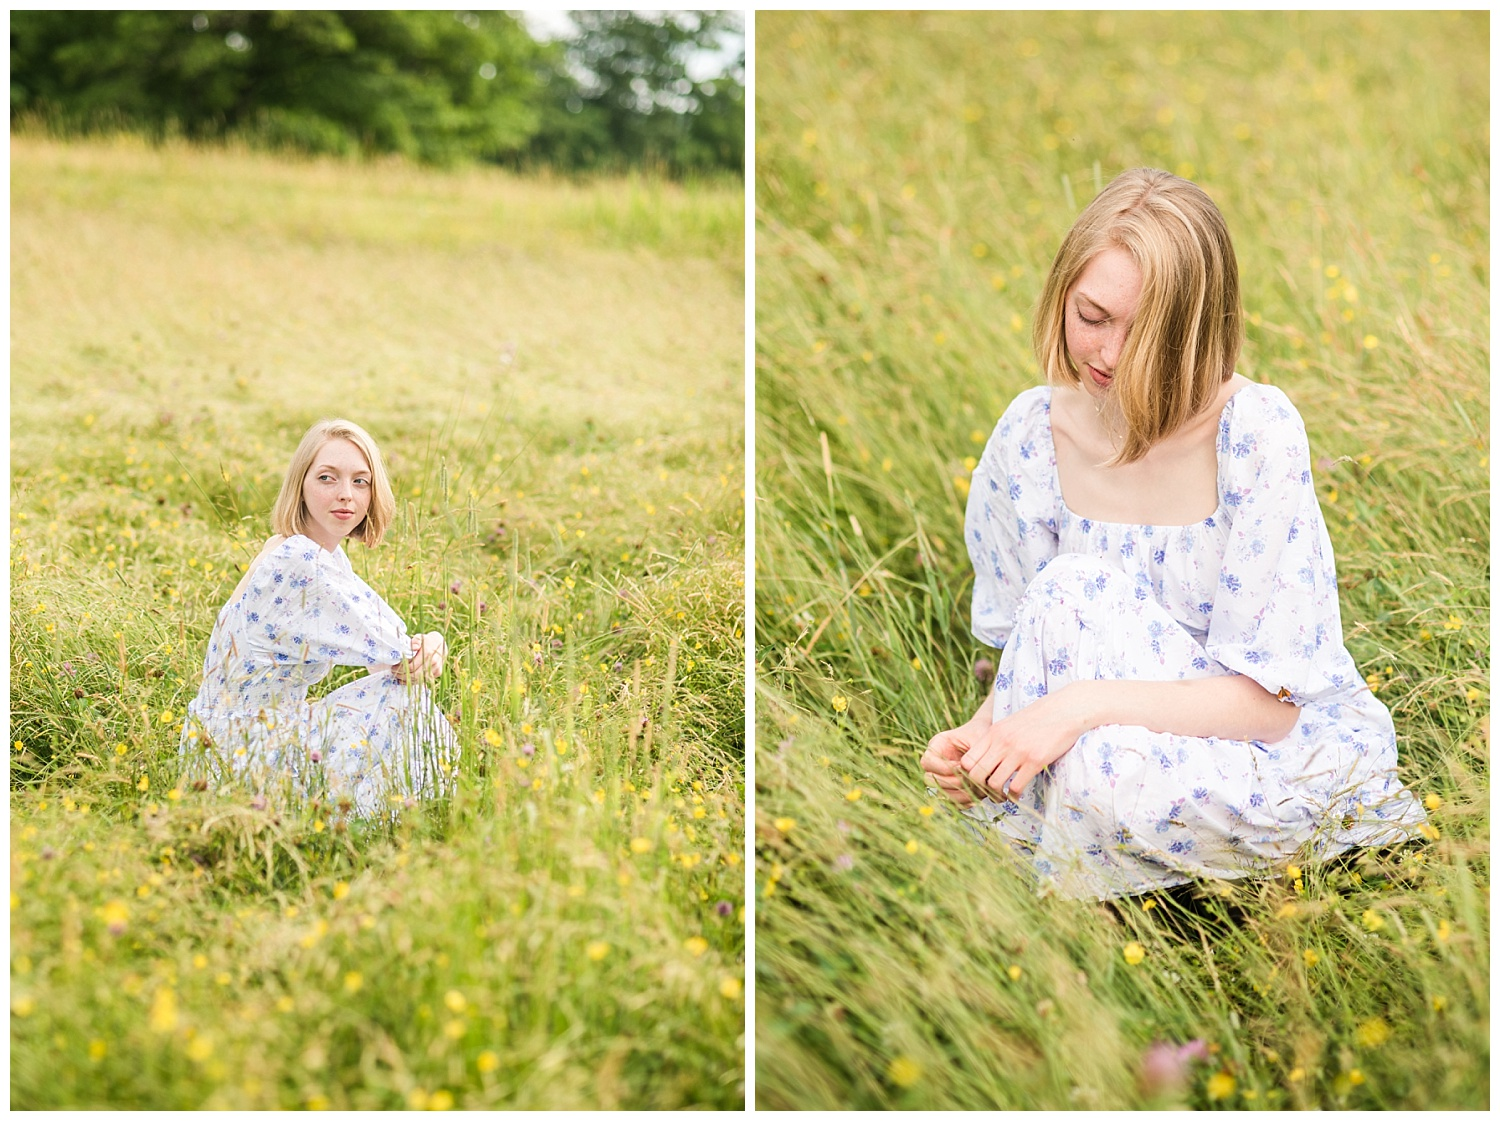 chassell michigan senior pictures in grassy summer field